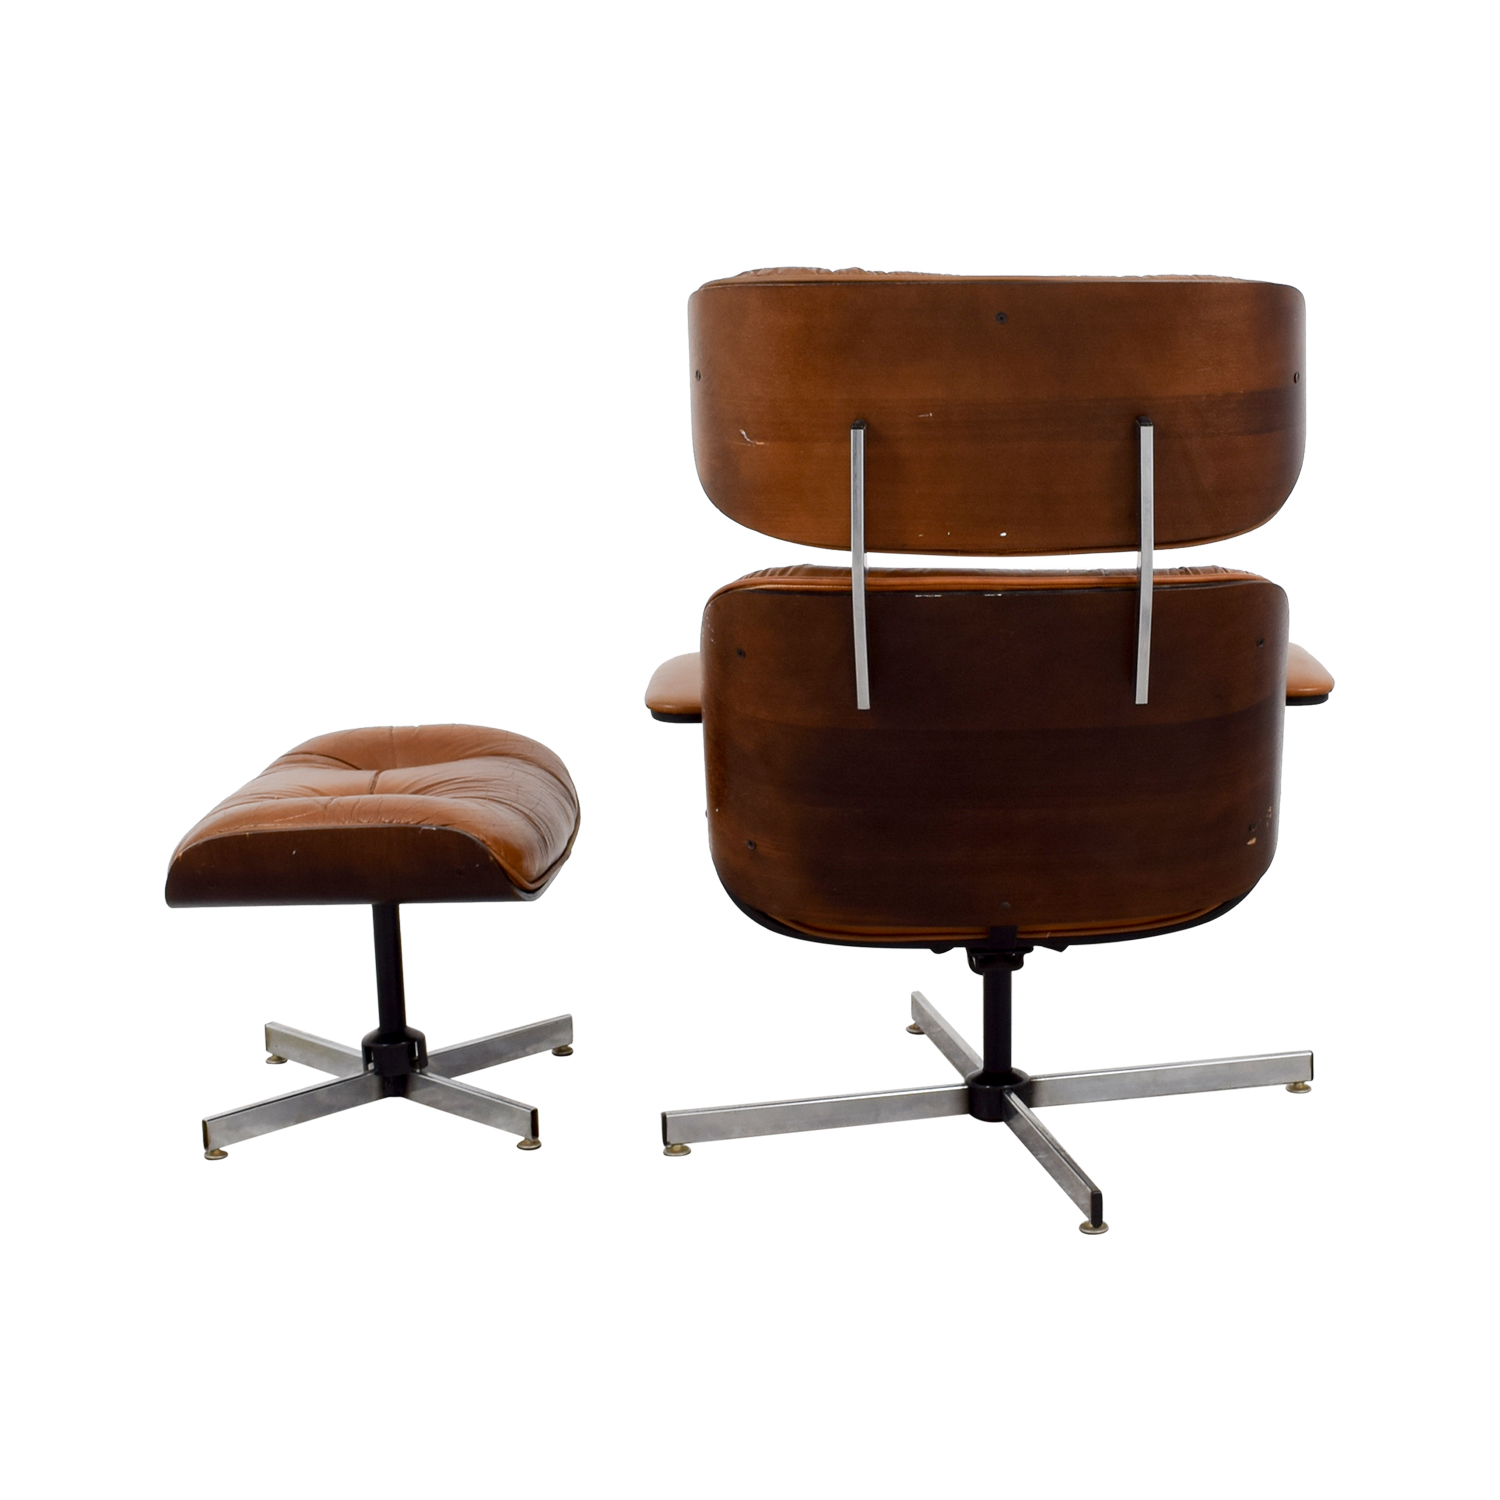 Eames Replica Leather Chair with Ottoman nj